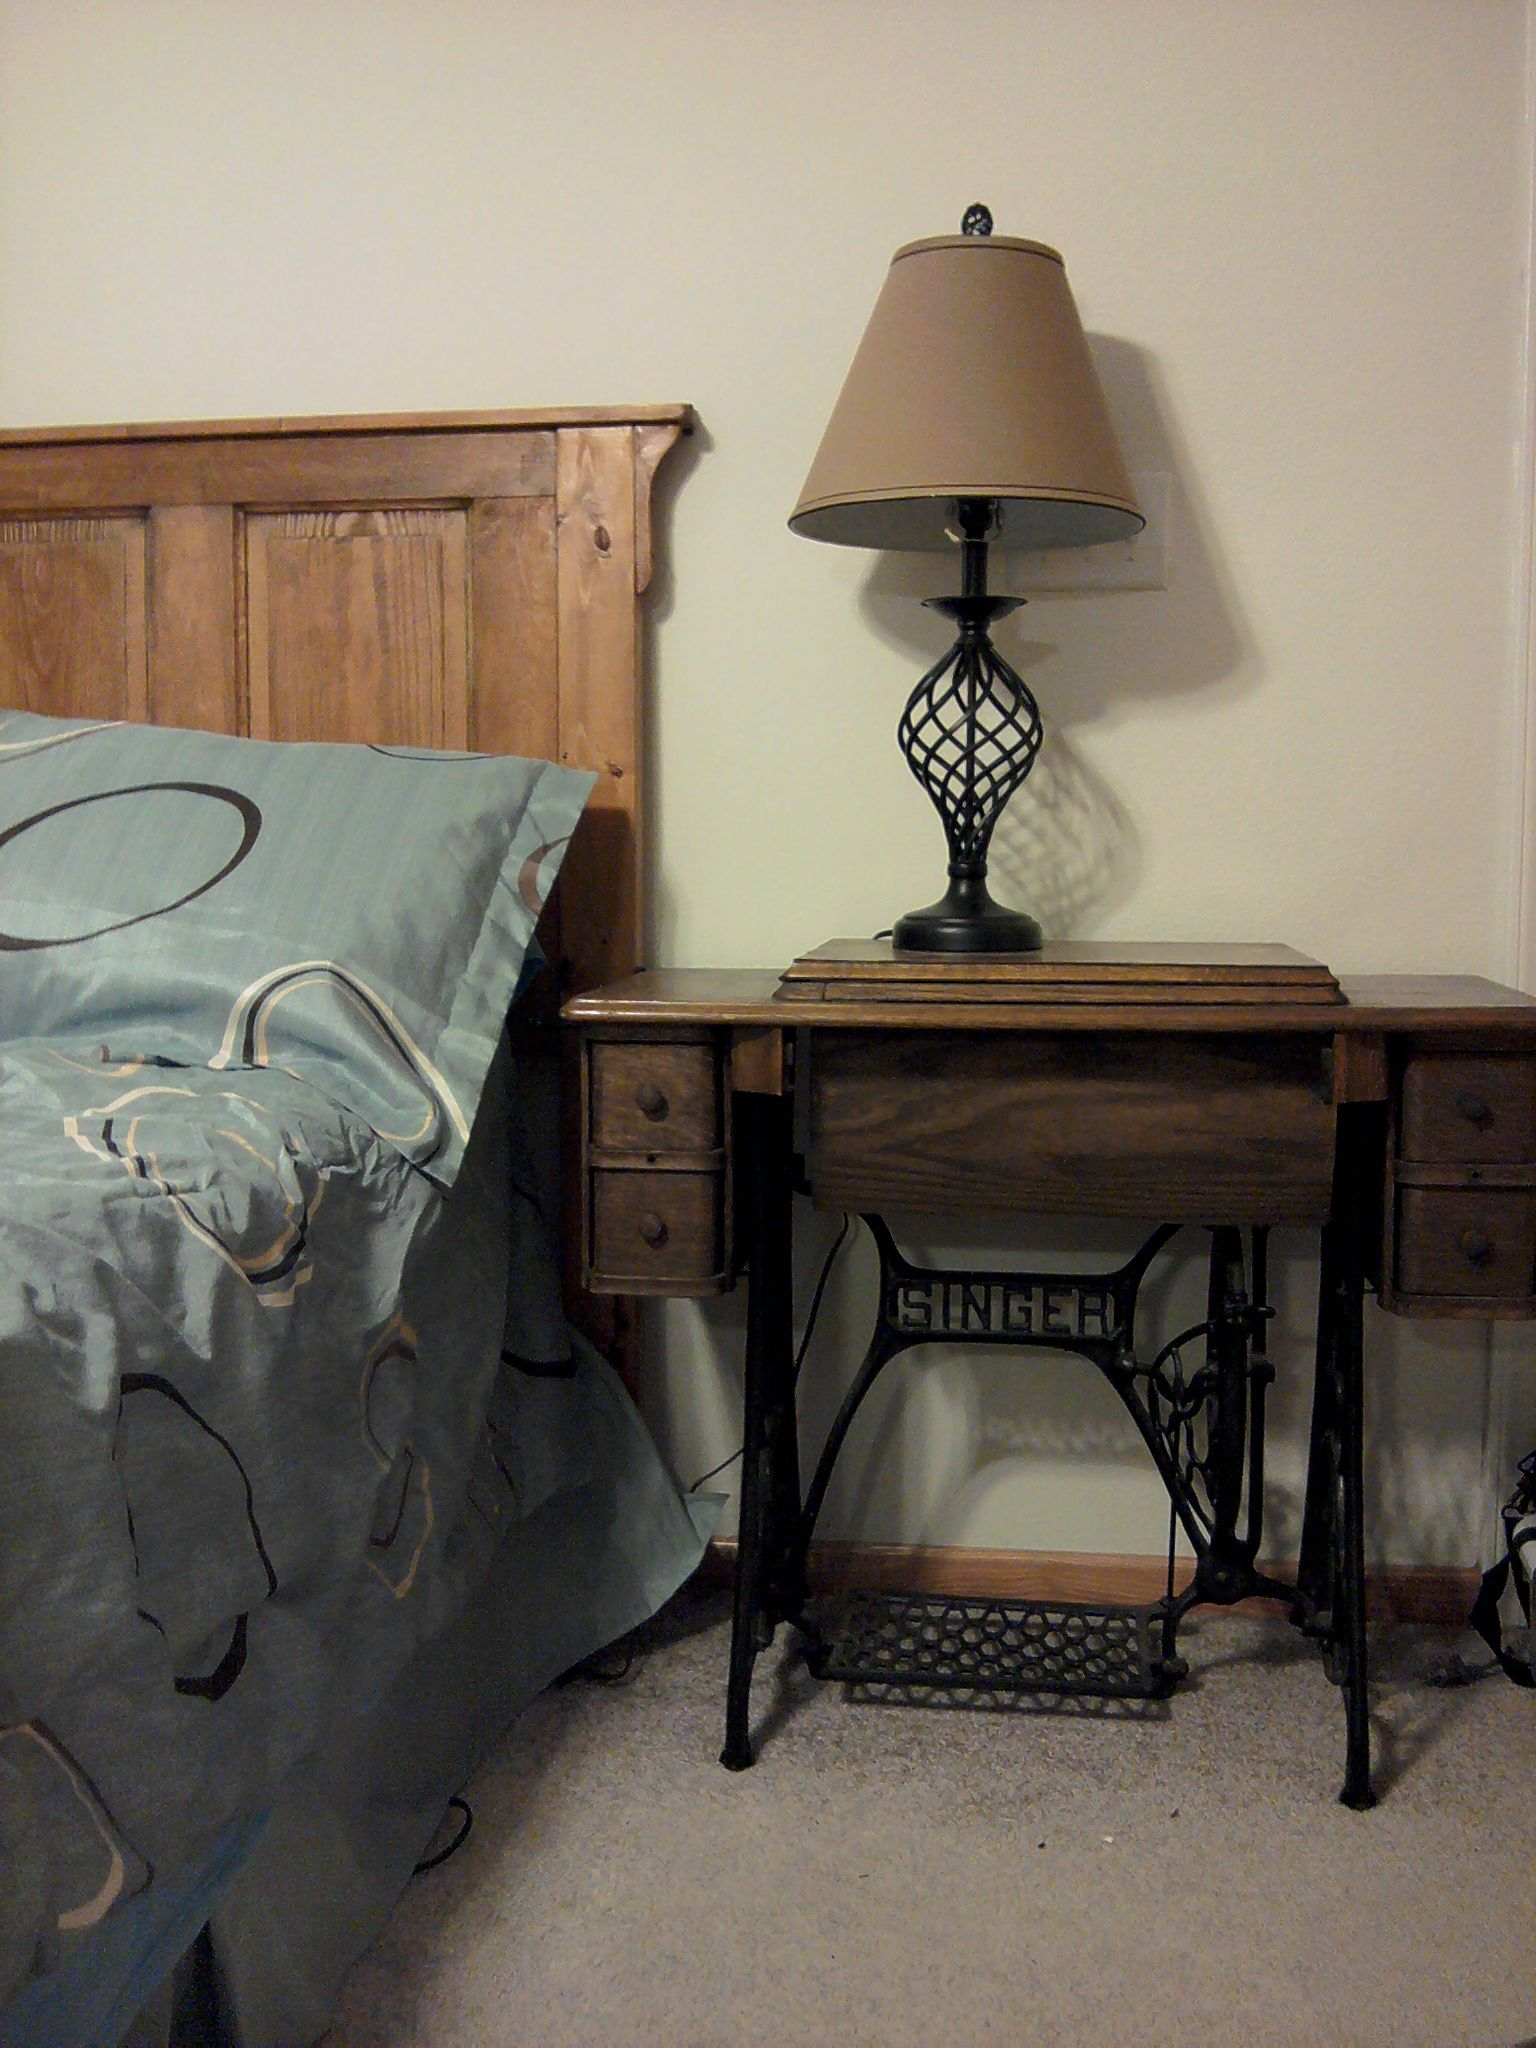 antique sewing table for bedside and antique panel door for headboard